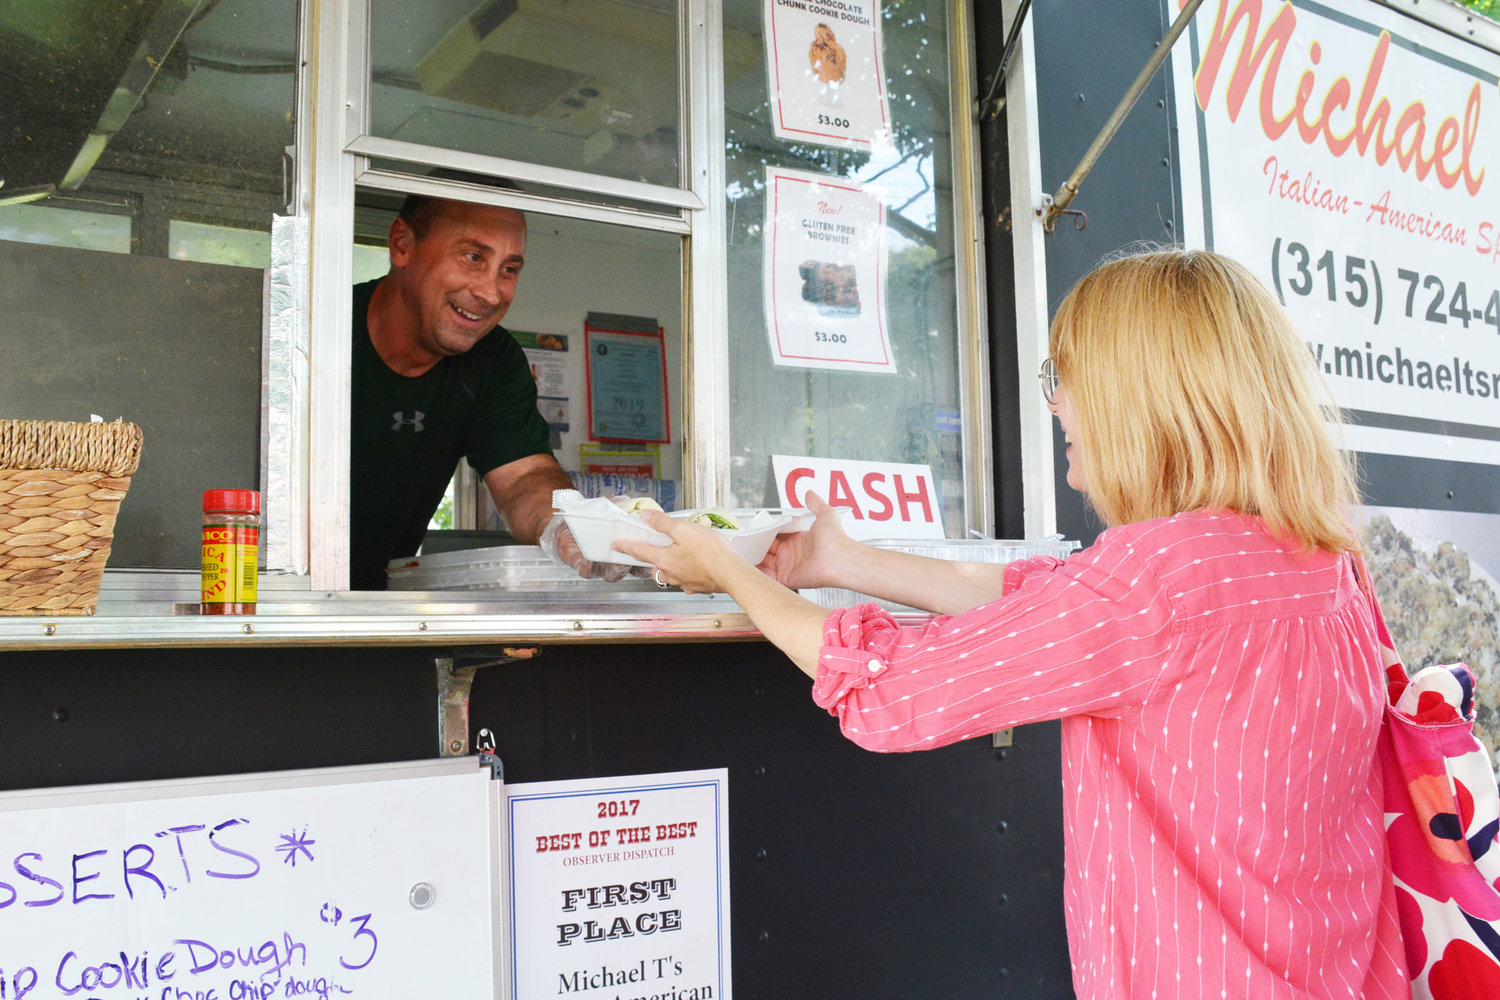 GREENS TO GO — Michael Trunfio, owner of Michael T's food truck hands customer Nicolle Child an order at the Farmer's Market on the Clinton Green, Thursday, Aug. 8. The Clinton resident has been operating the food truck in the village market for the past three years, but said this is his busiest year to date.